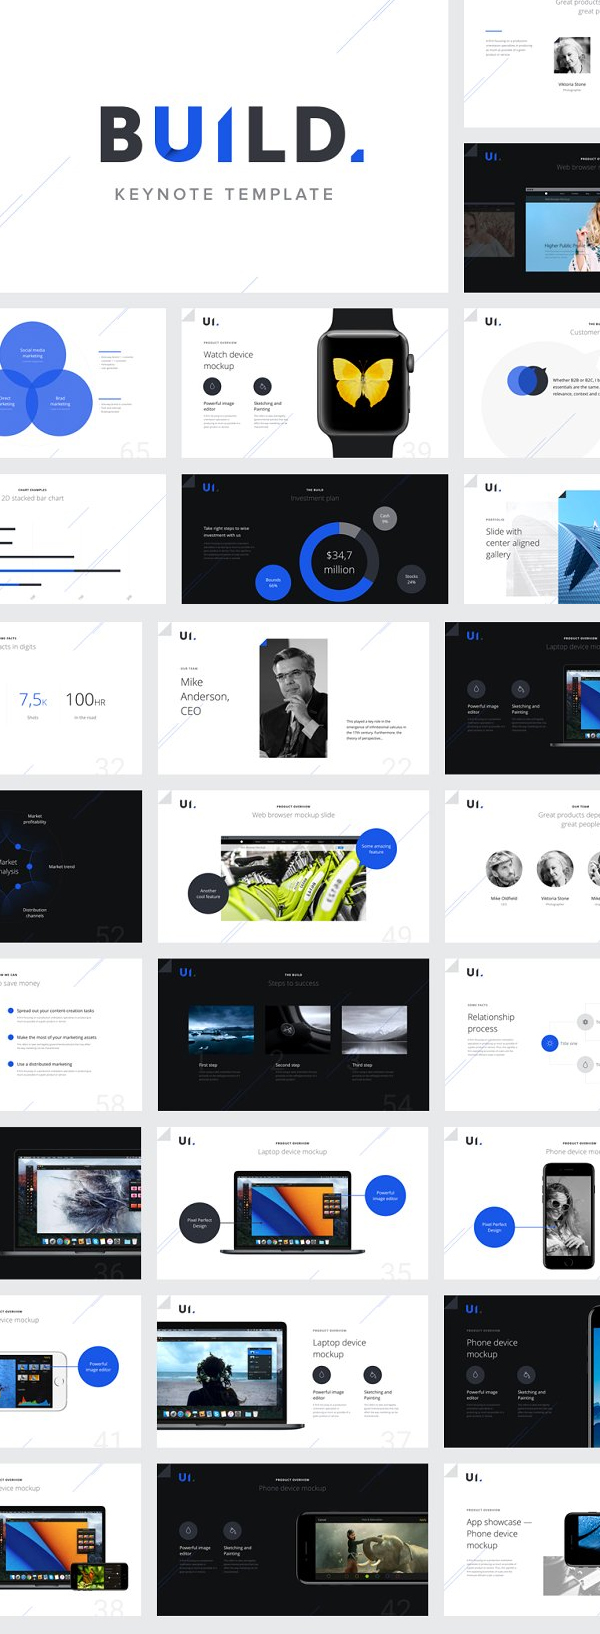 Impressive and Memorable Keynote Presentation Template